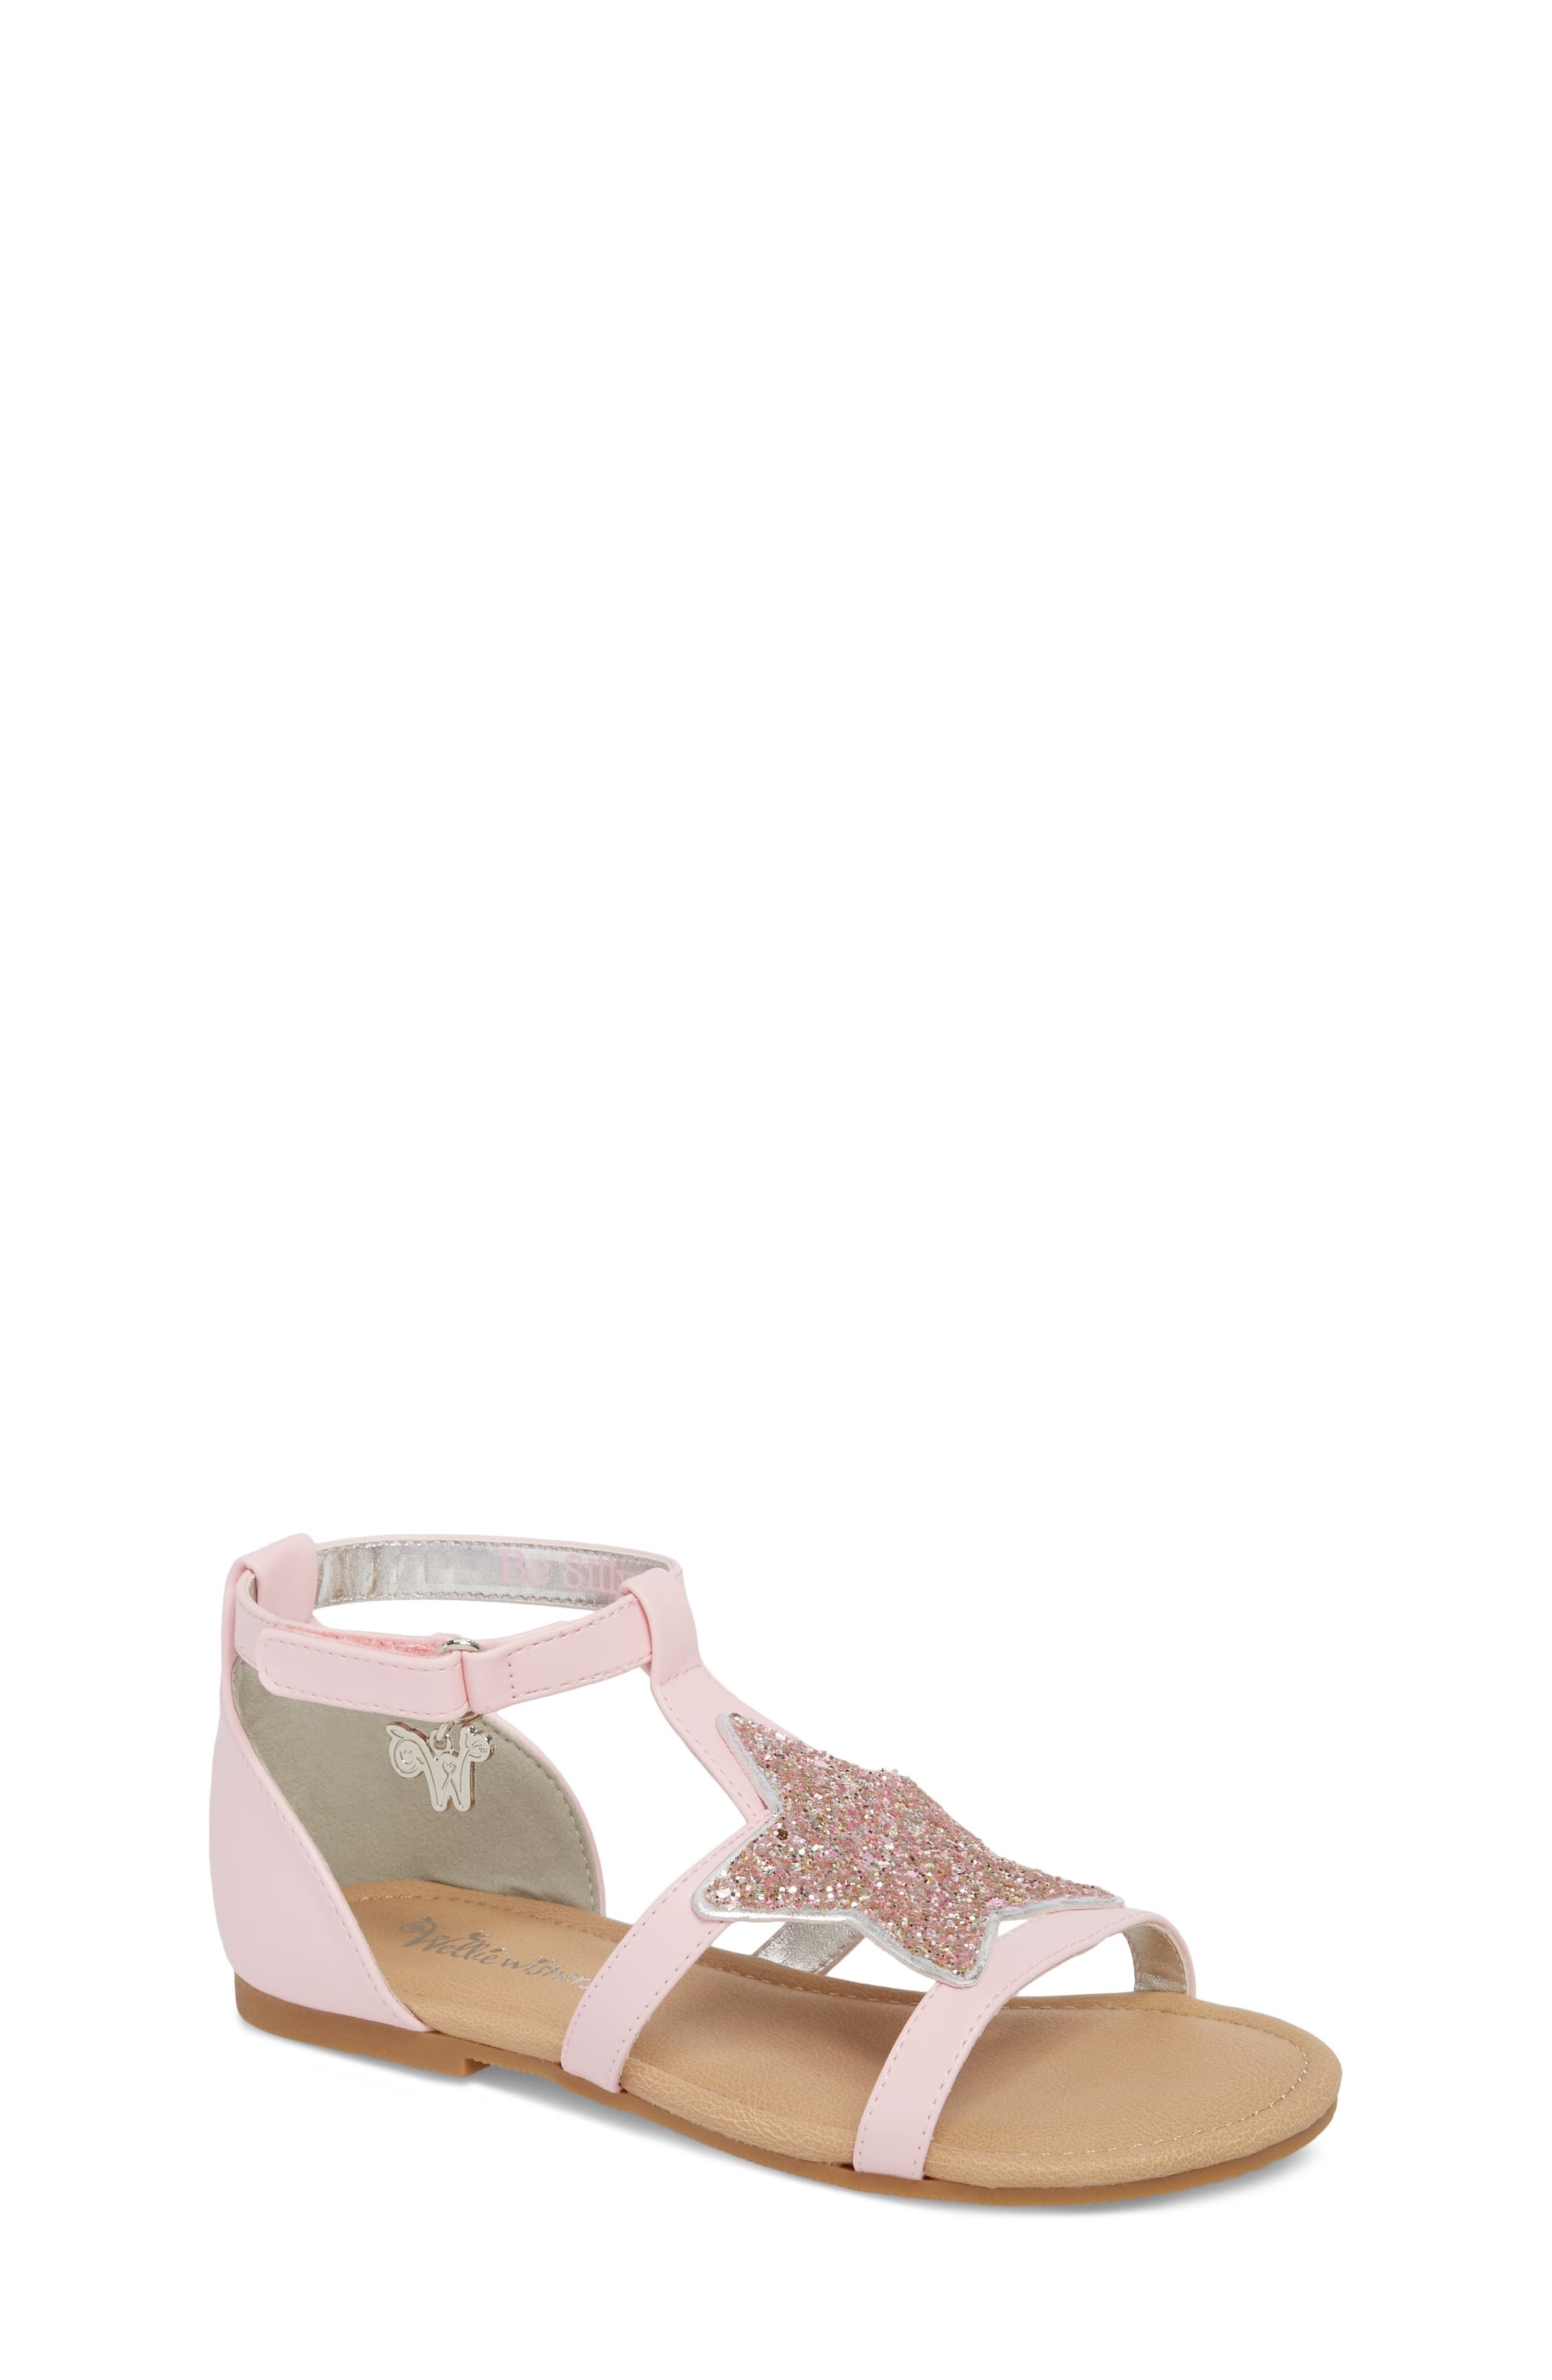 Emerson Glitter Star Sandal,                         Main,                         color, 697